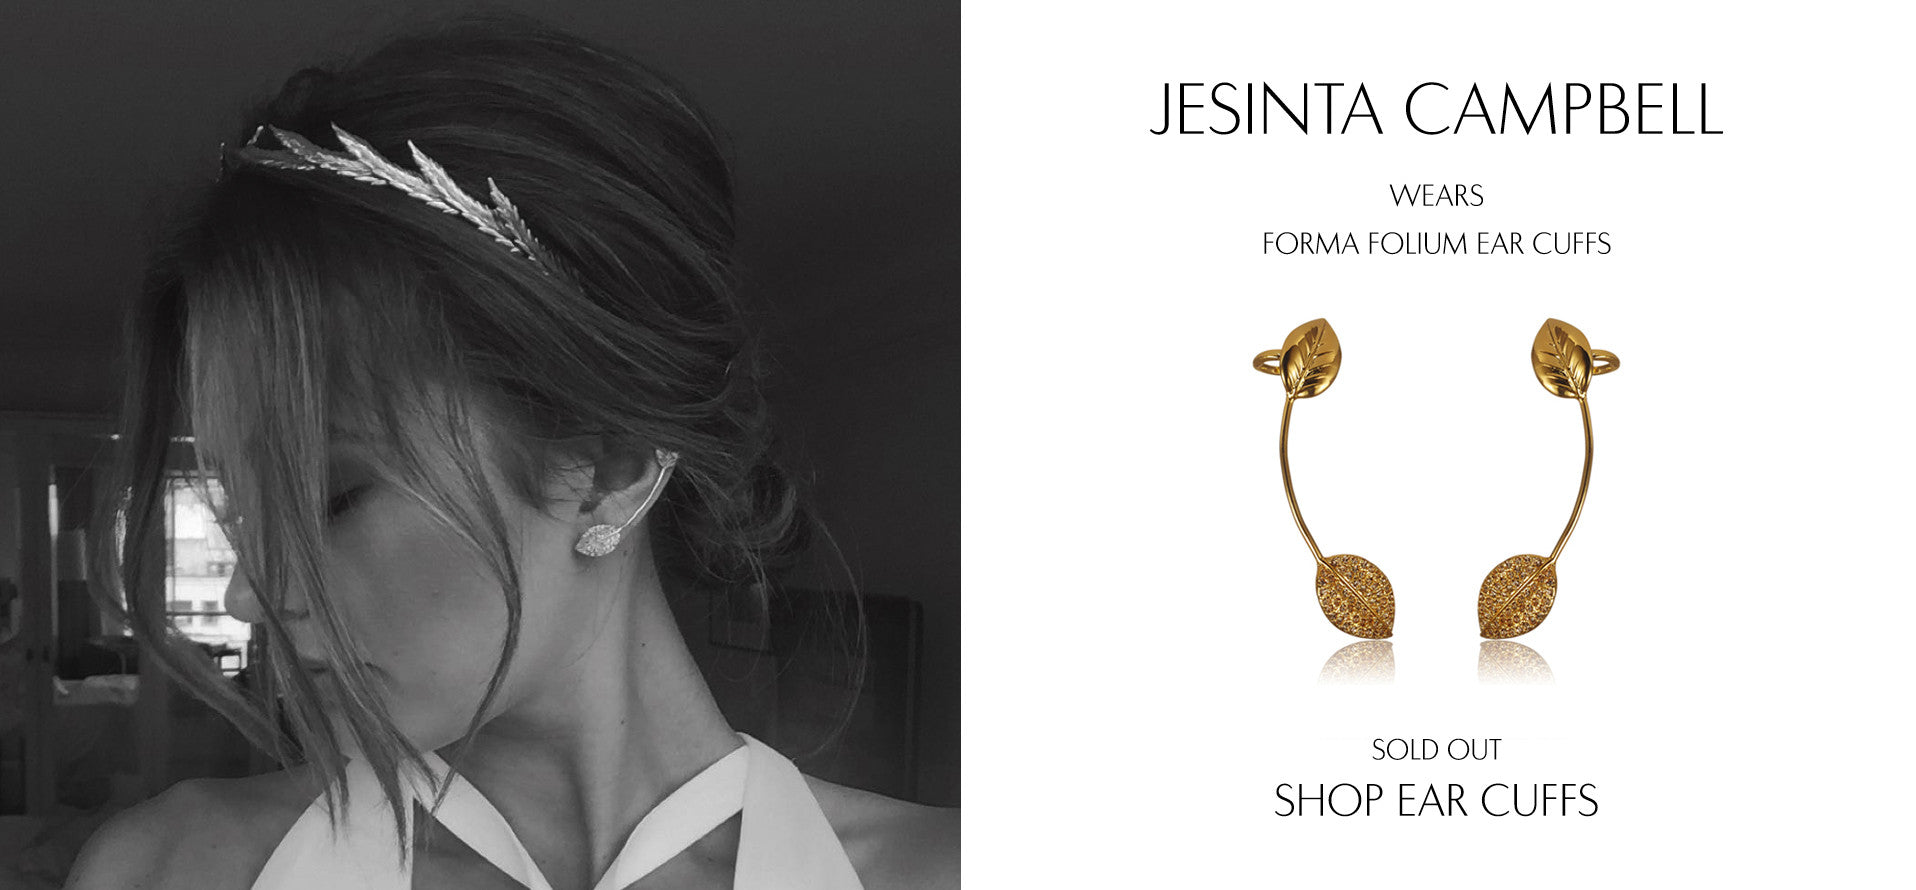 Model Jesinta Campbell wears Sarina Suriano Forma Folium Ear cuffs to The Caulfield Cup 2015